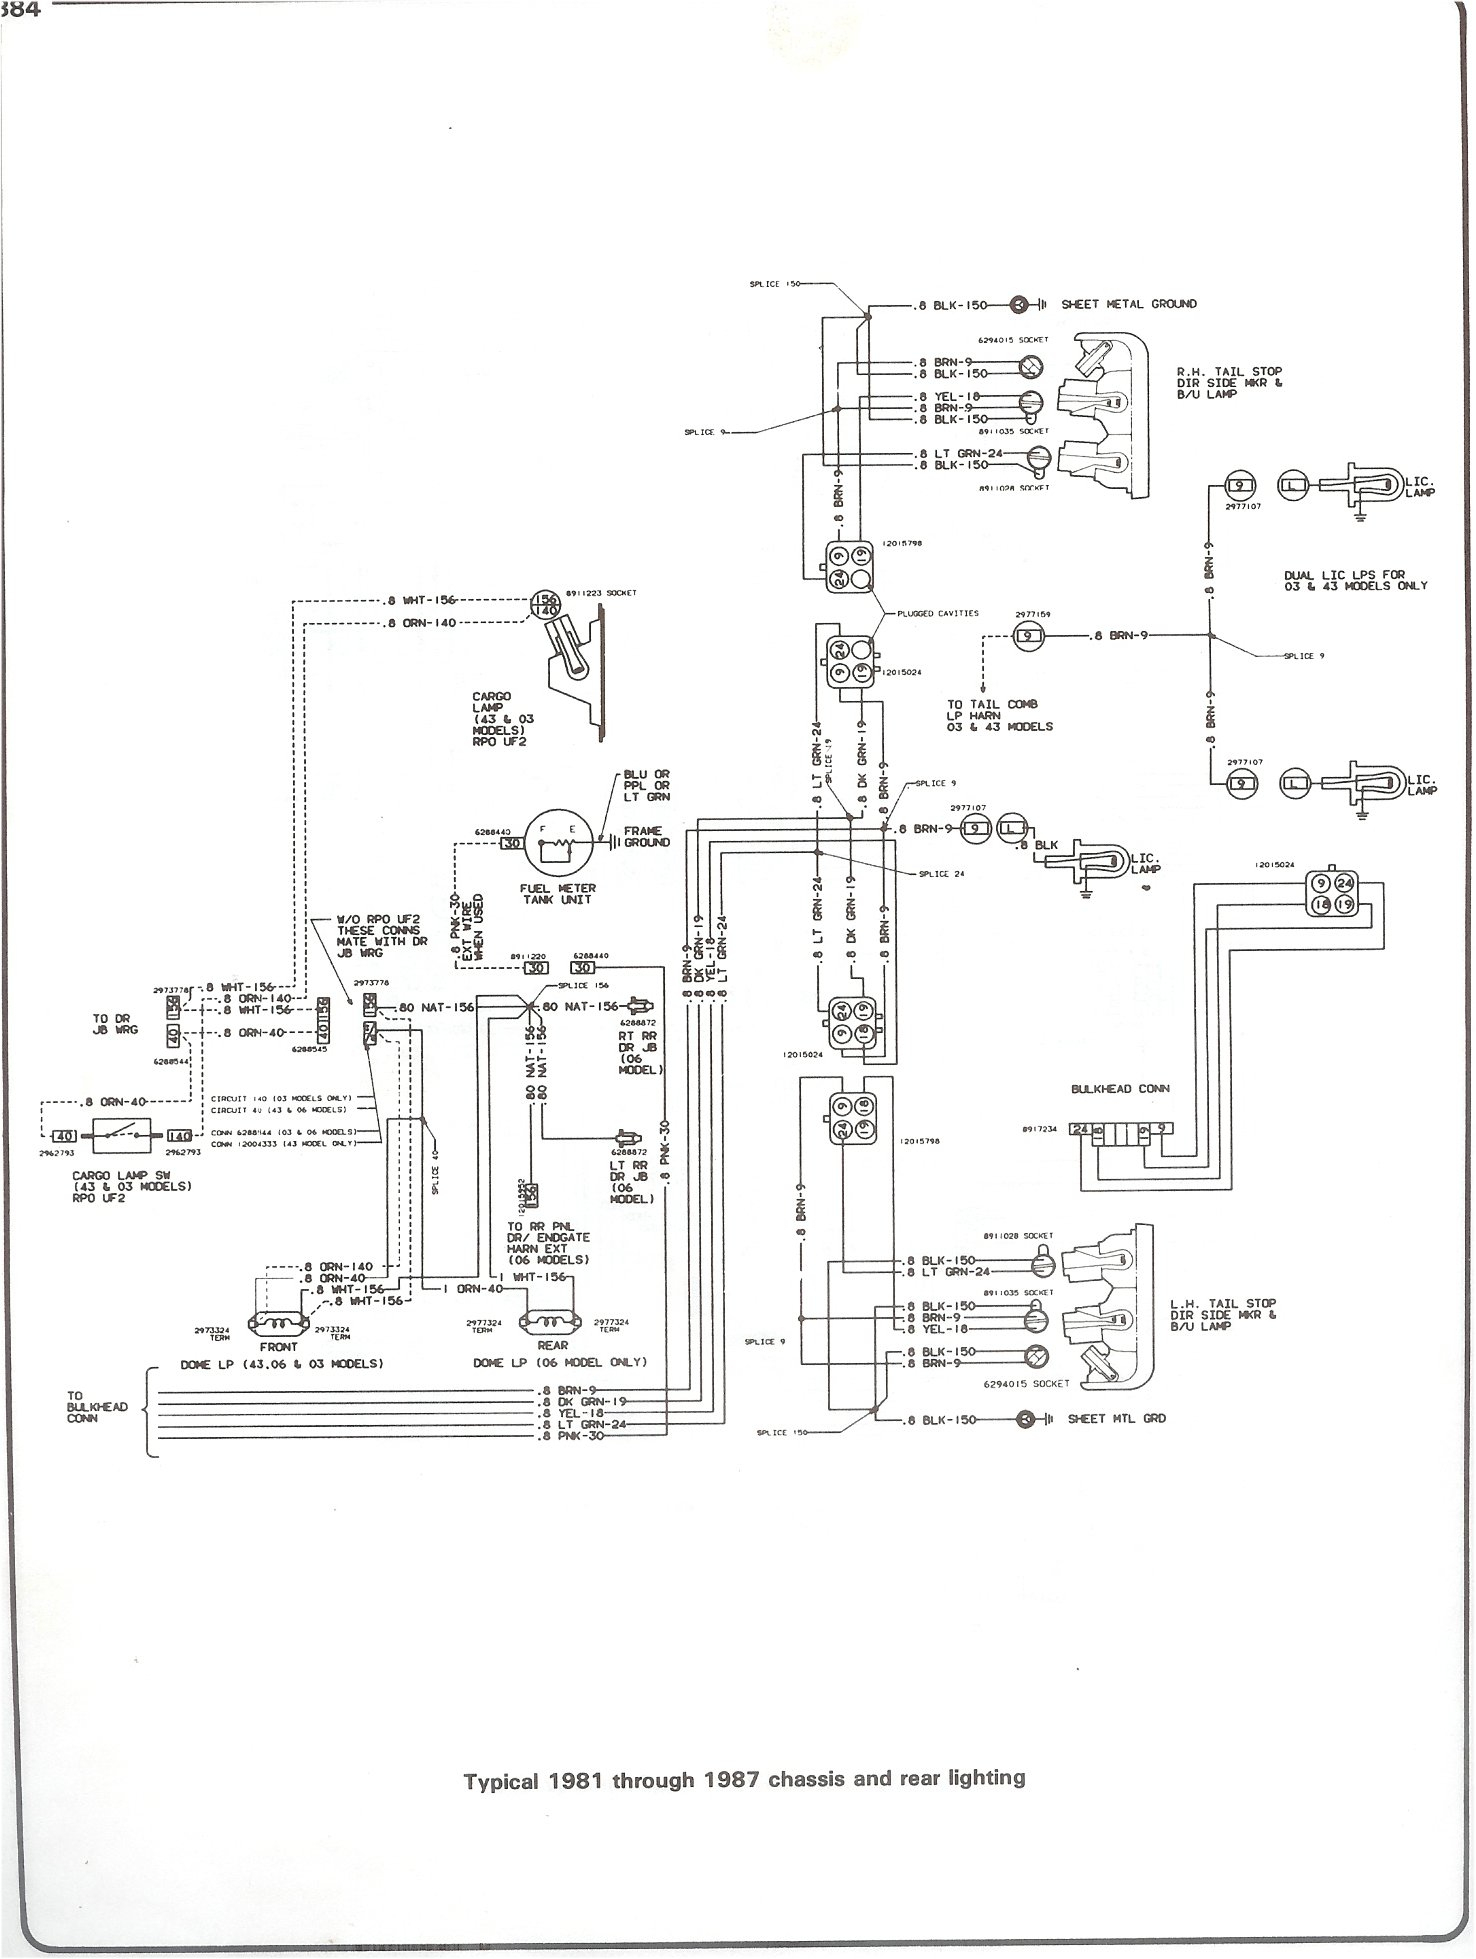 1982 Chevy Truck Wiring Harness - Wiring Diagrams Hubs - 1982 Chevy Truck Wiring Diagram